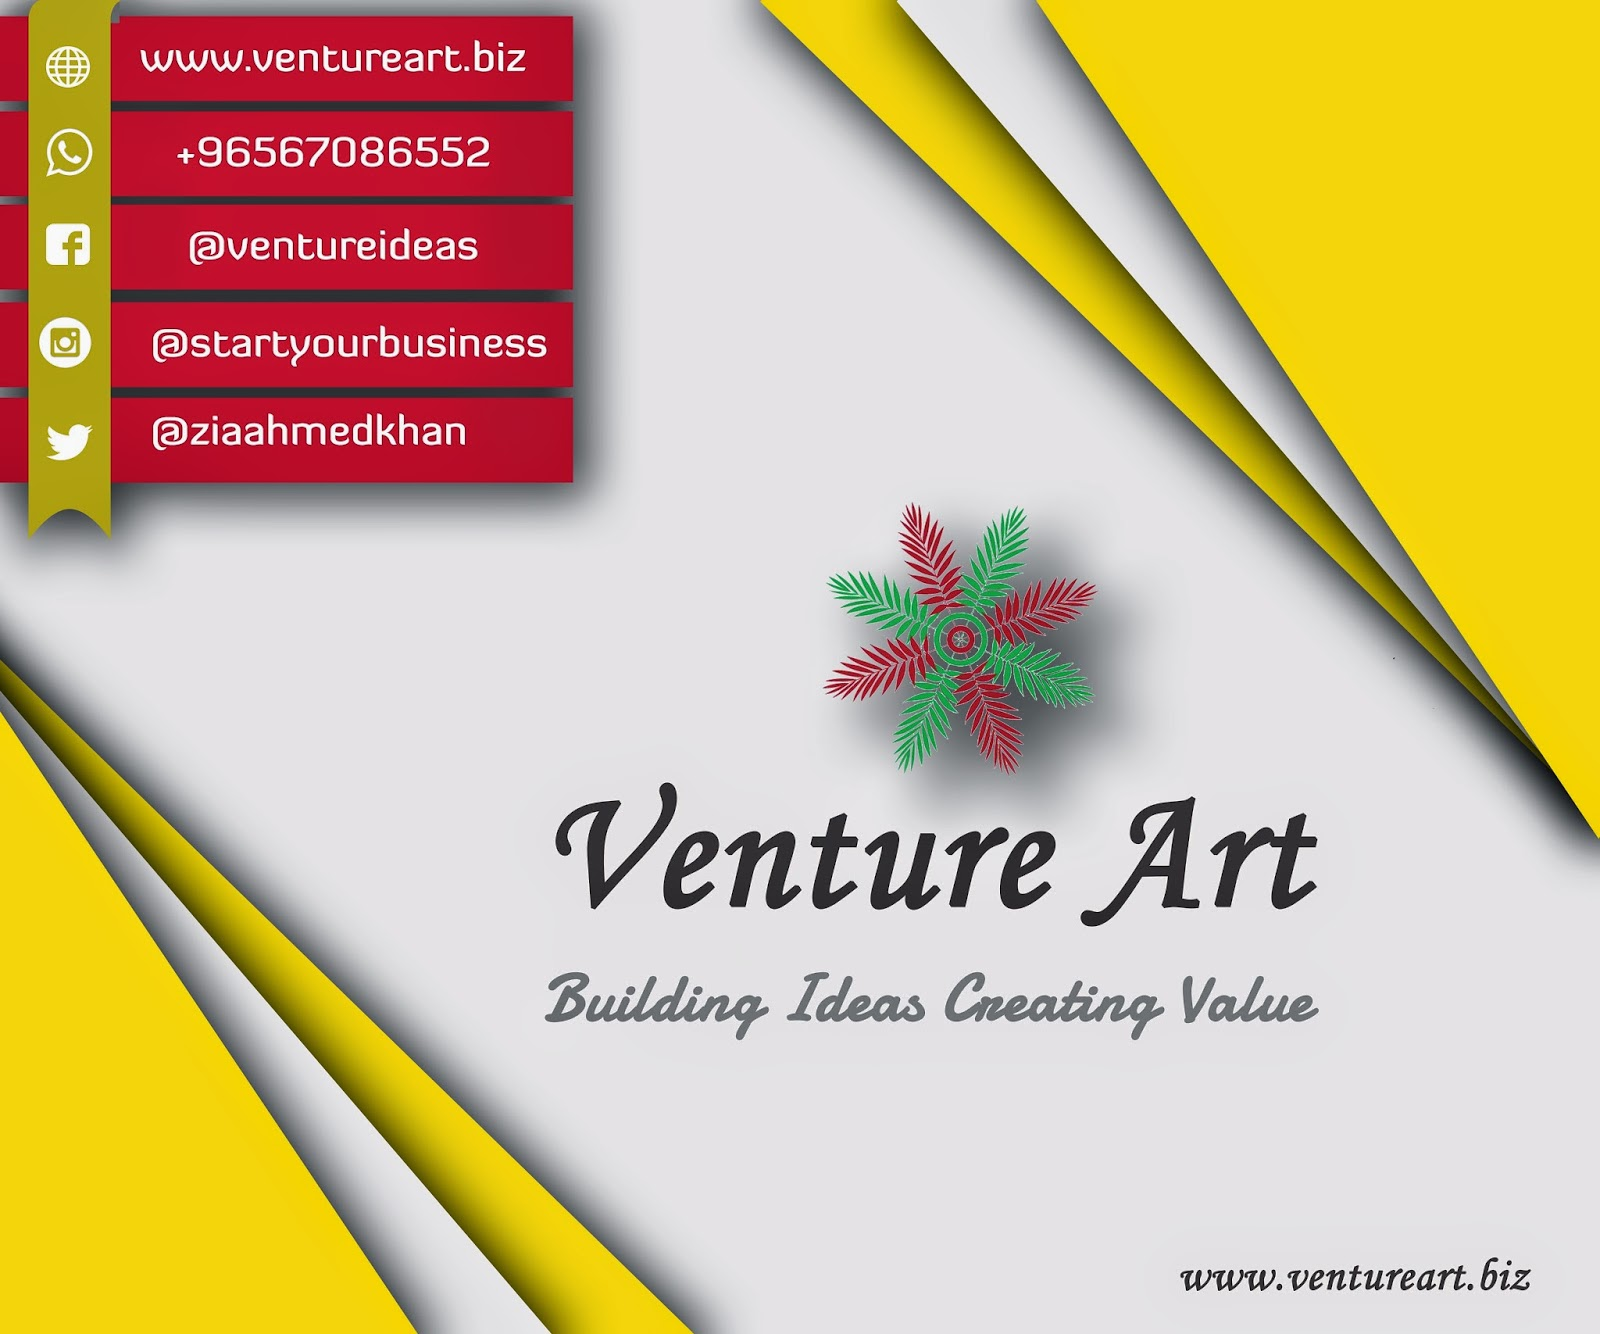 Building Ideas Creating Value - Venture Art, Small Business, Entrepreneurship, Start-Up